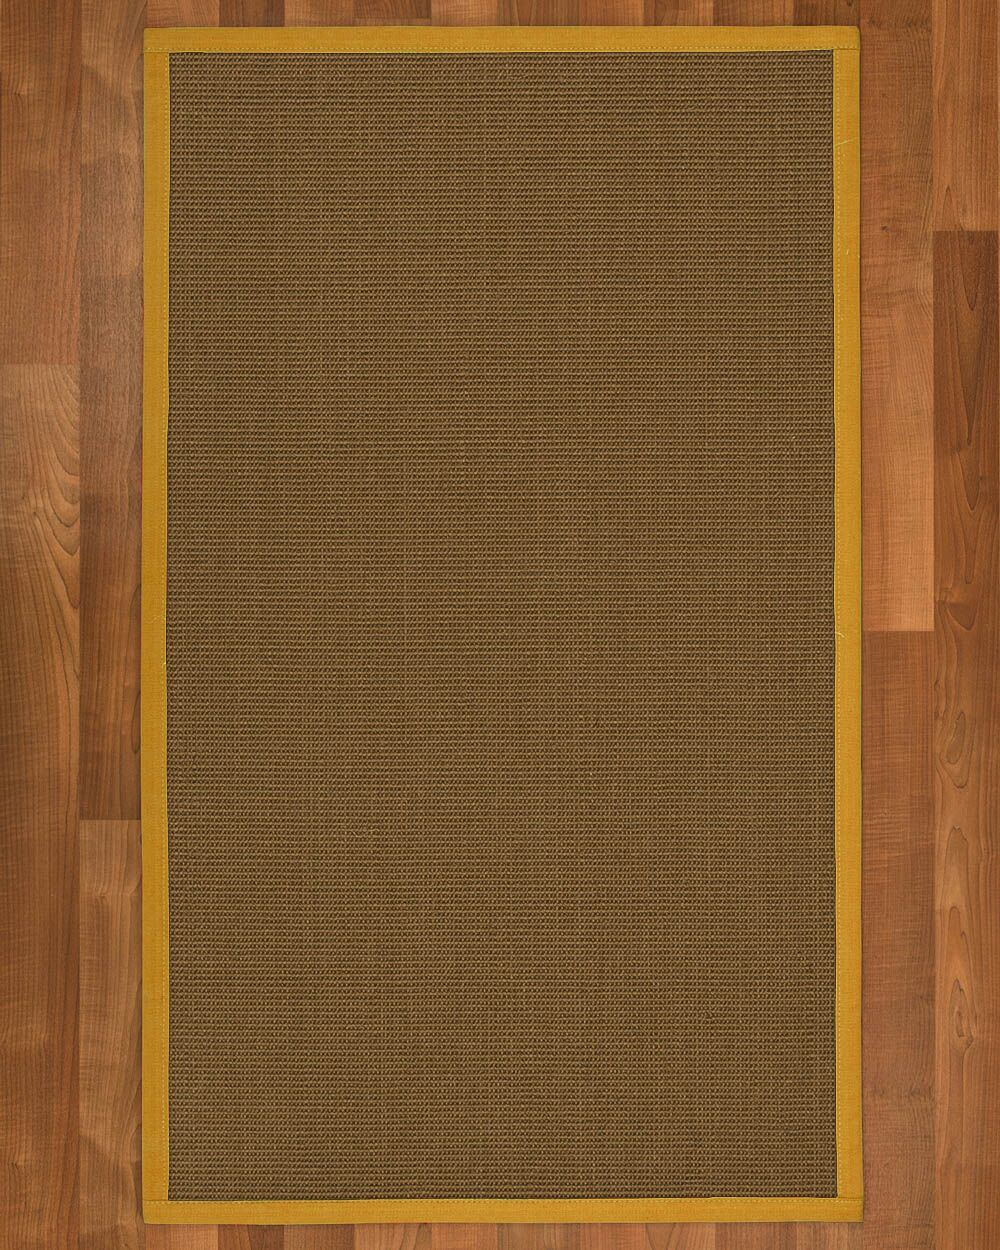 Aderyn Hand Woven Brown Area Rug Rug Size: Rectangle 8' X 10'